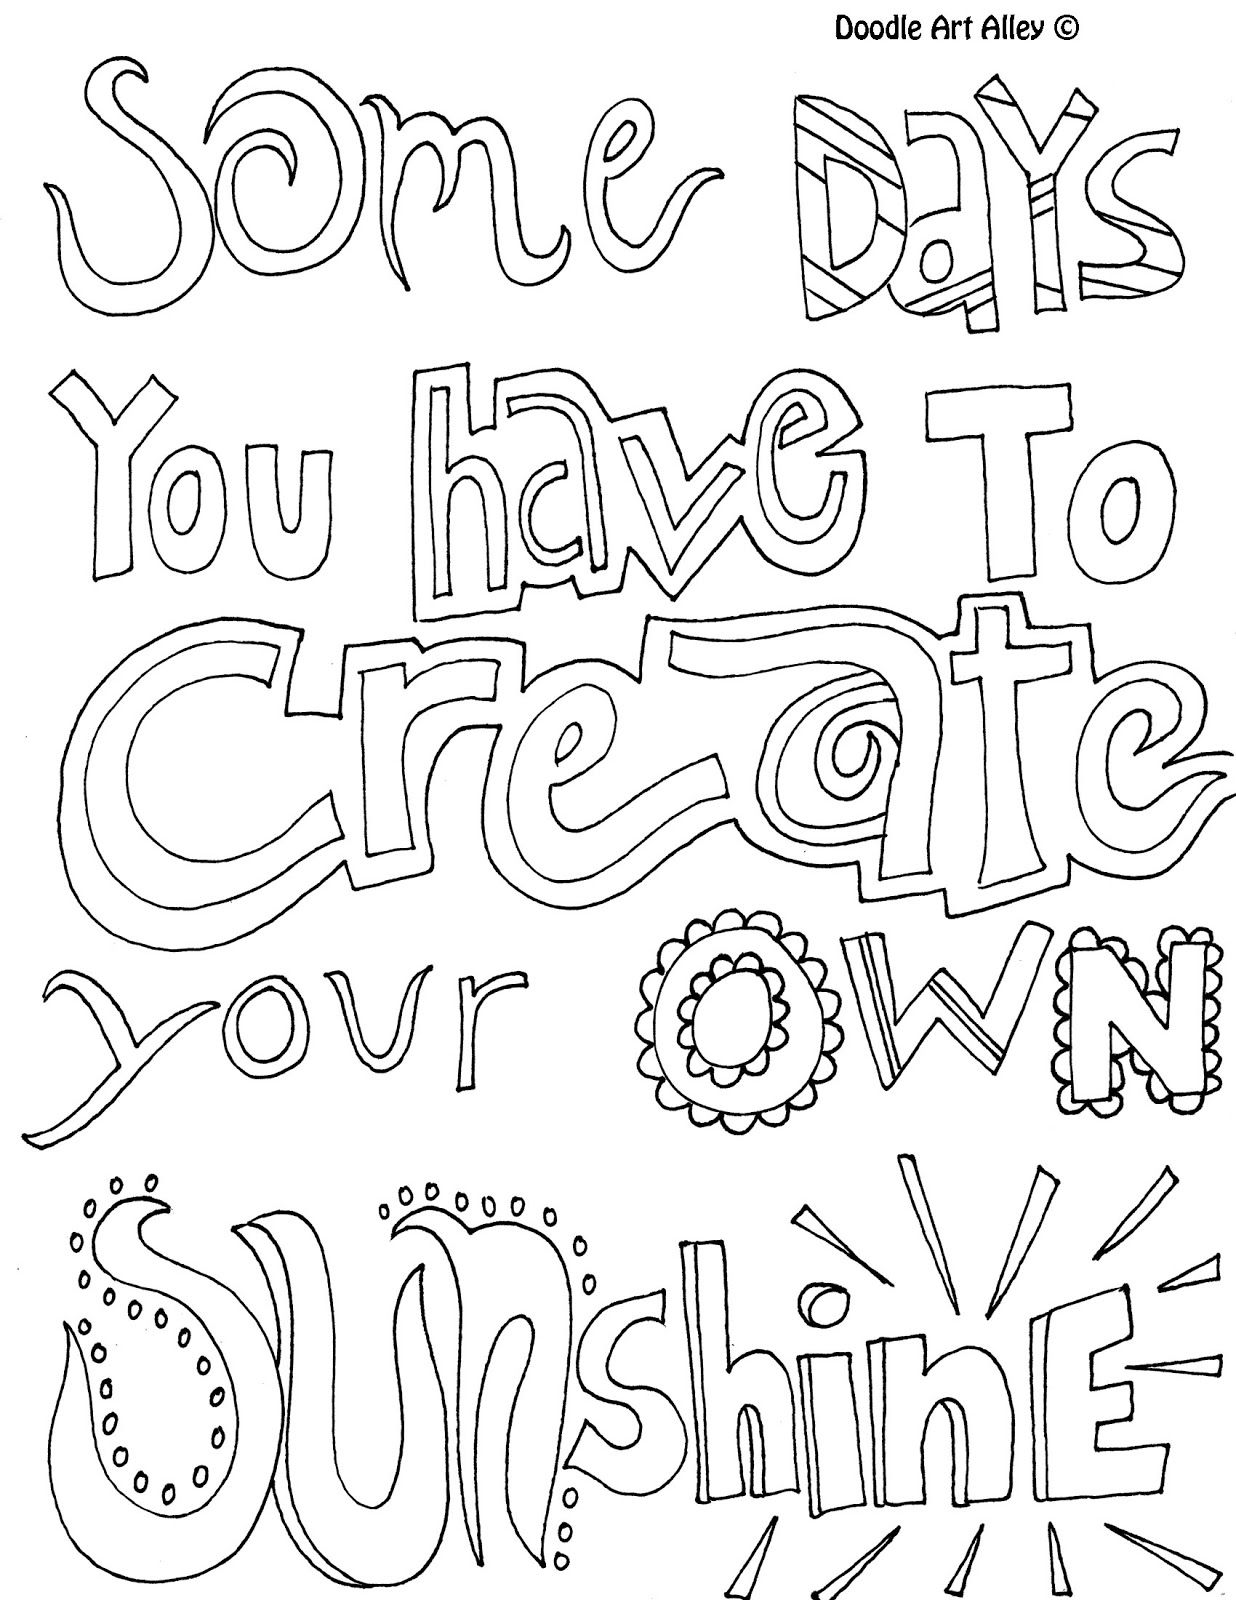 Coloring pages with quotes - All Quotes Coloring Pages Great Quotes Doodle Page Great To Use In The Classroom